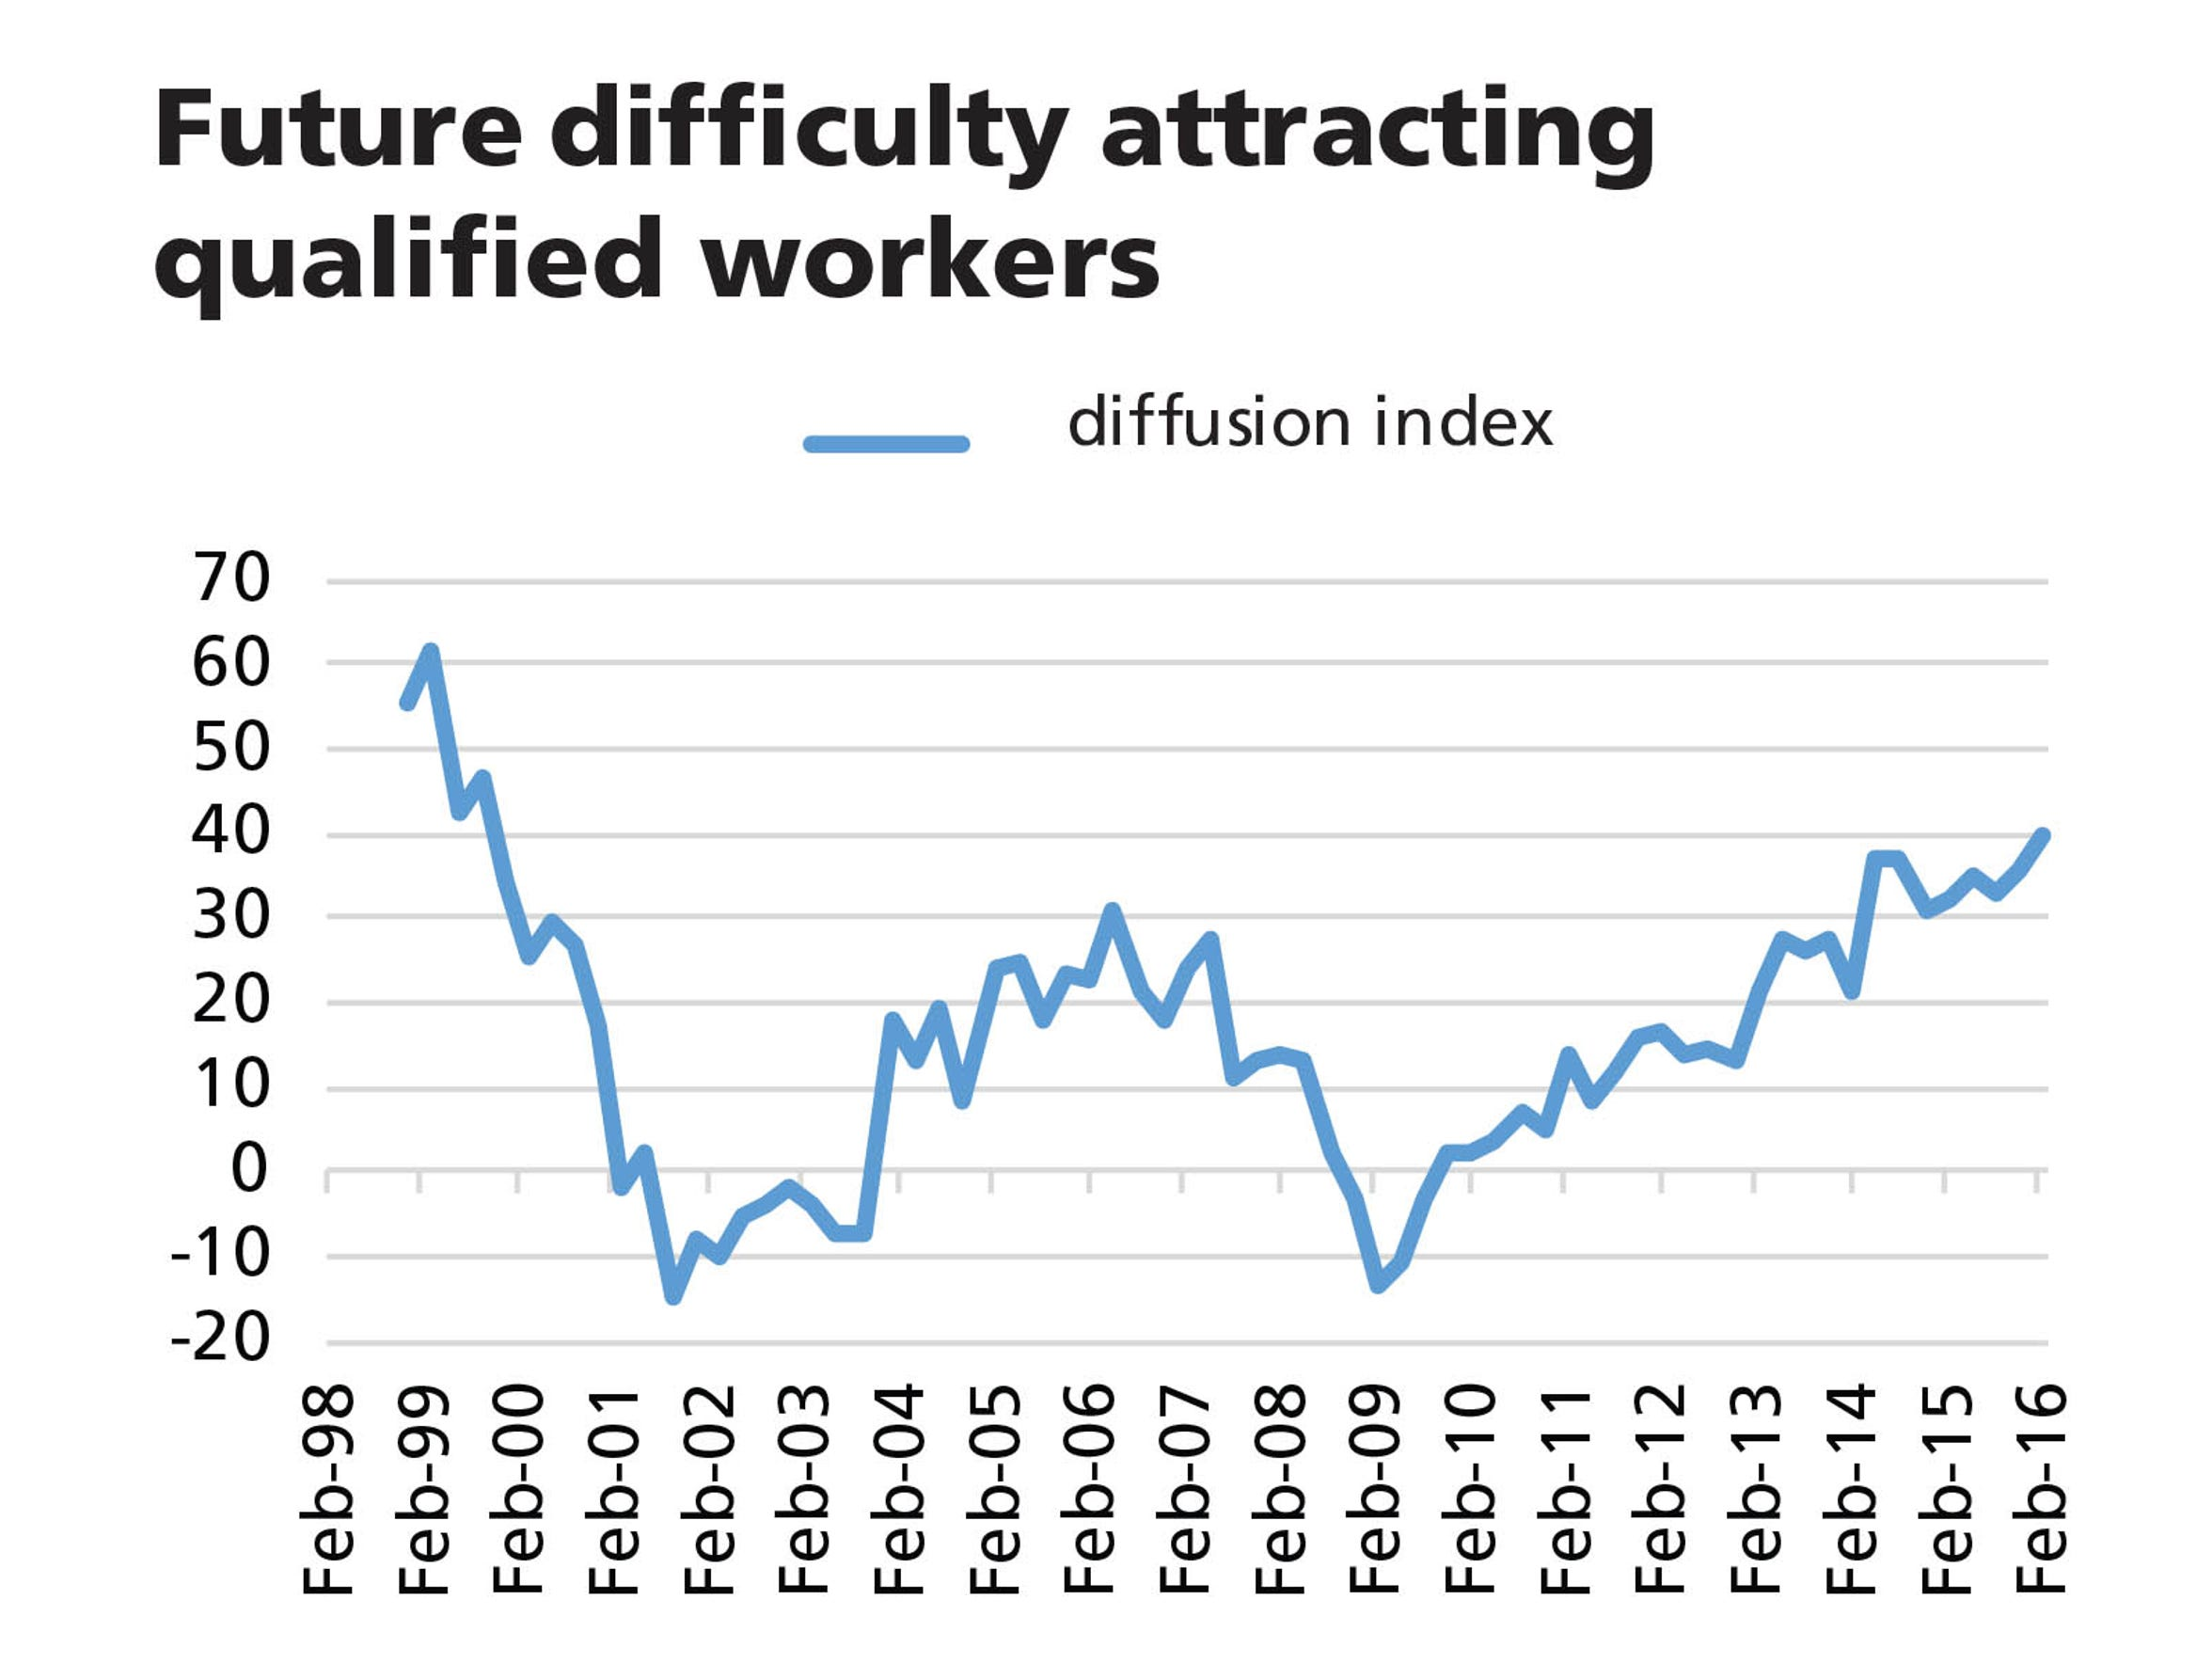 Difficulty attracting qualified workers